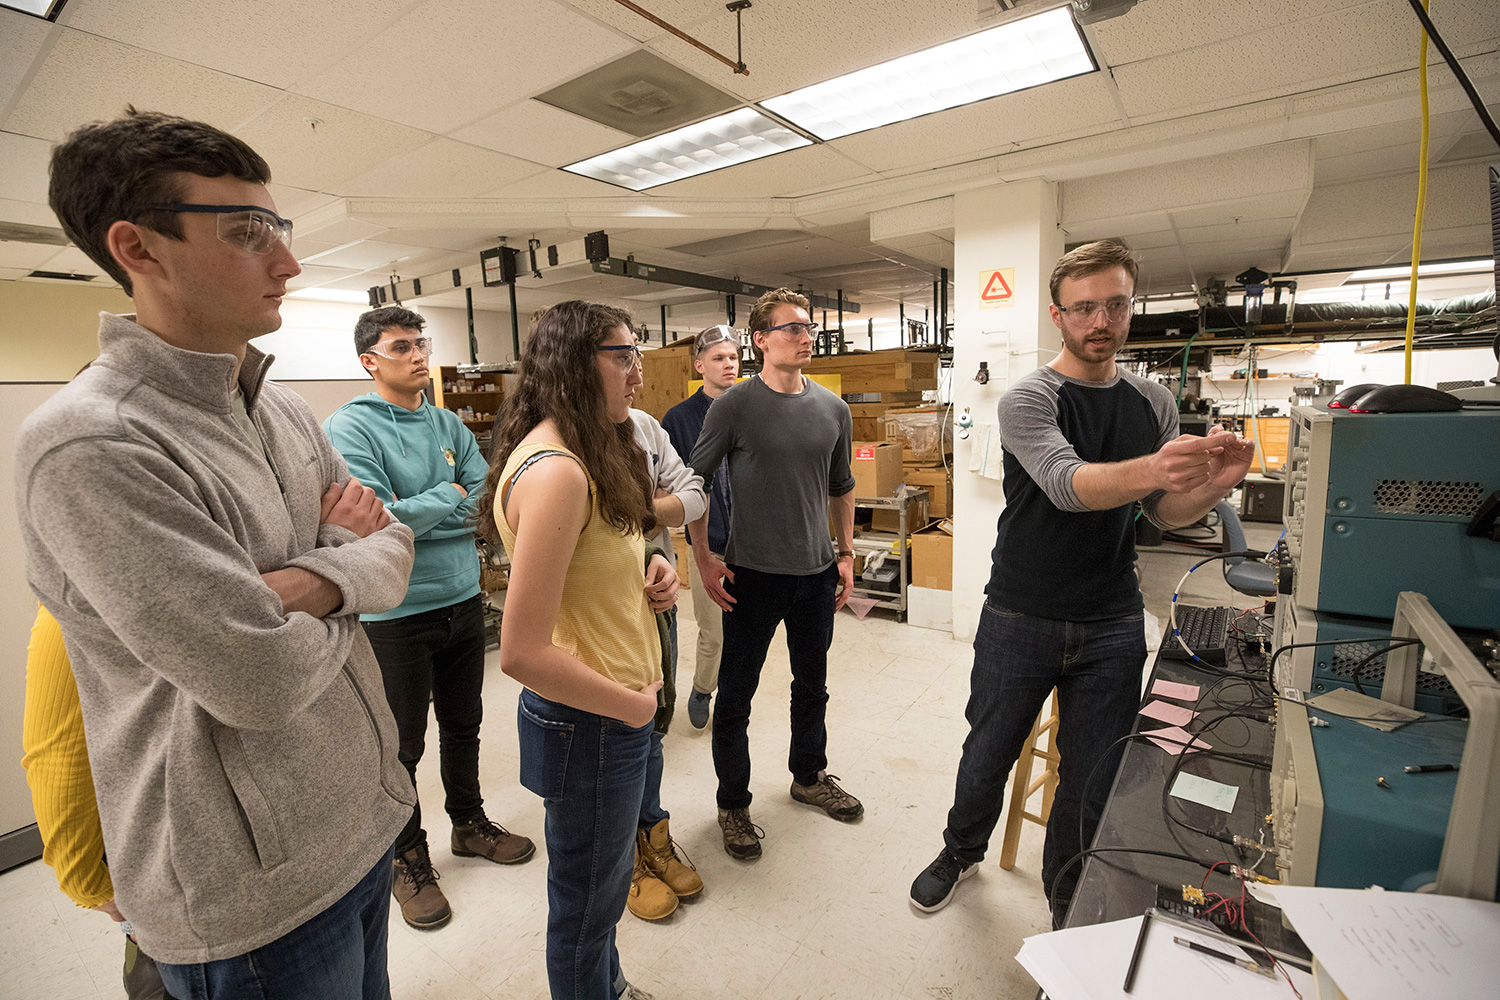 Chemistry graduate student Channing West is leading Pate's undergraduate physical chemistry course, which is developing analysis techniques for peach brandy.